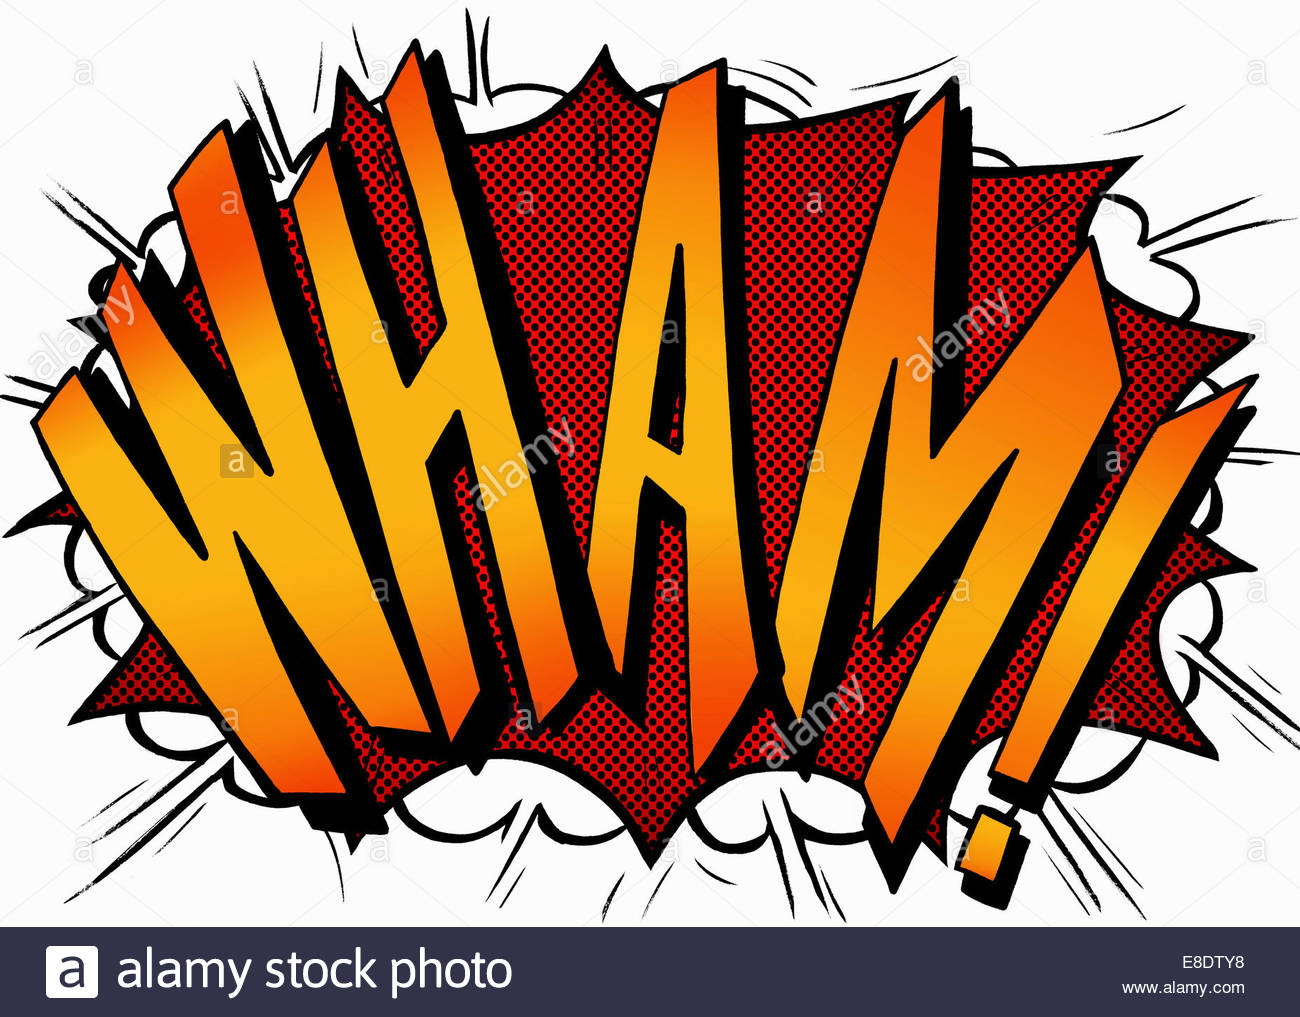 Wham Comic Book Text Sound Effect Stock Photo 74063676